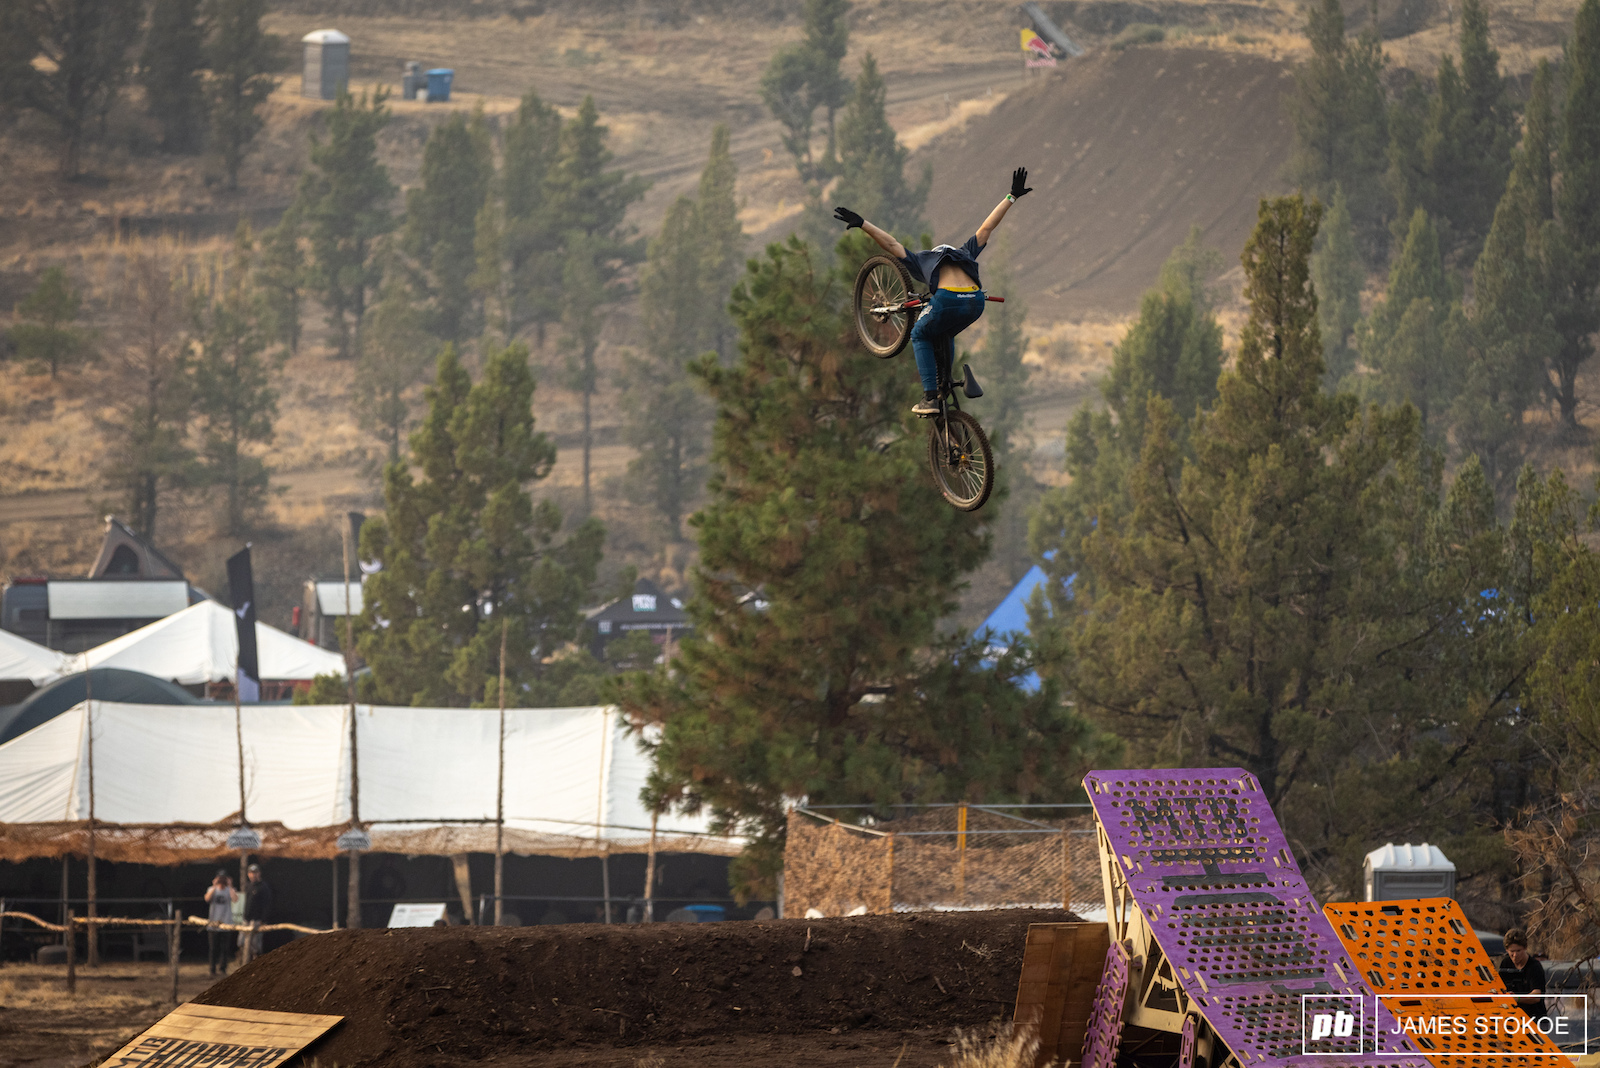 Jaxon Riddle was all over the bottom half of the course. Here you see him checking out the MTB Hopper.